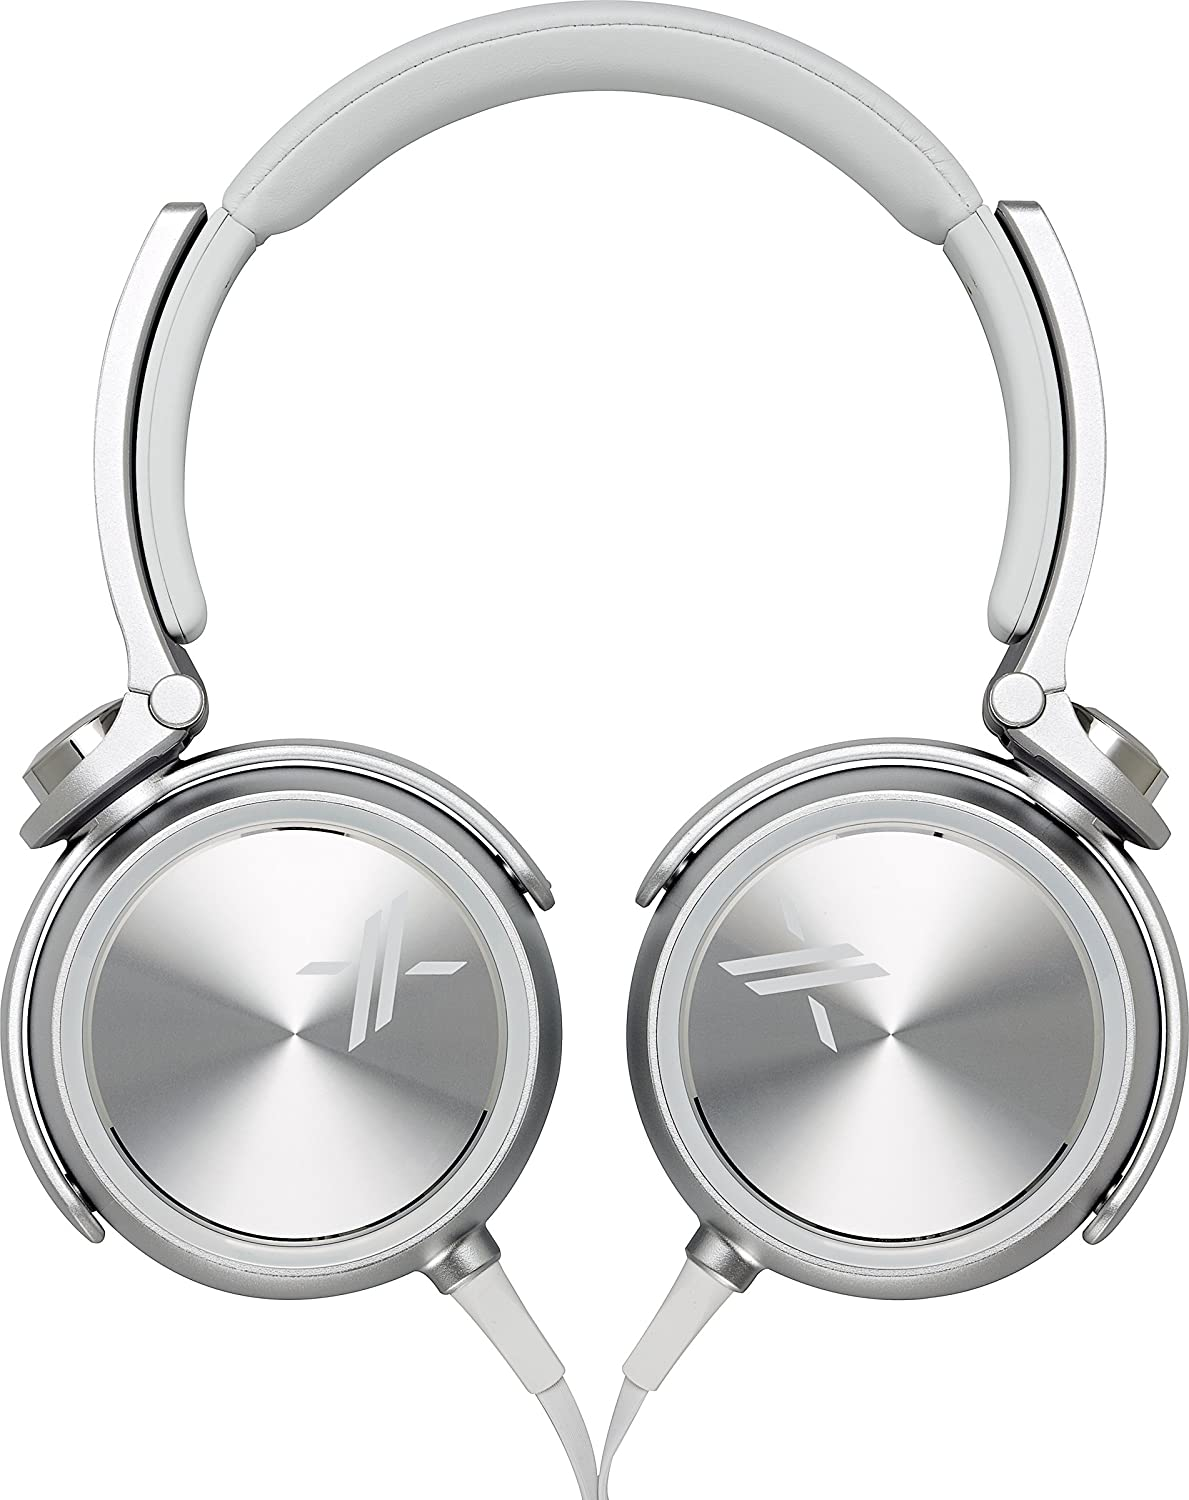 amazon sony mdrx05 ws simon cowell x headphones white silver Stereo Jack Wiring Diagram amazon sony mdrx05 ws simon cowell x headphones white silver home audio theater